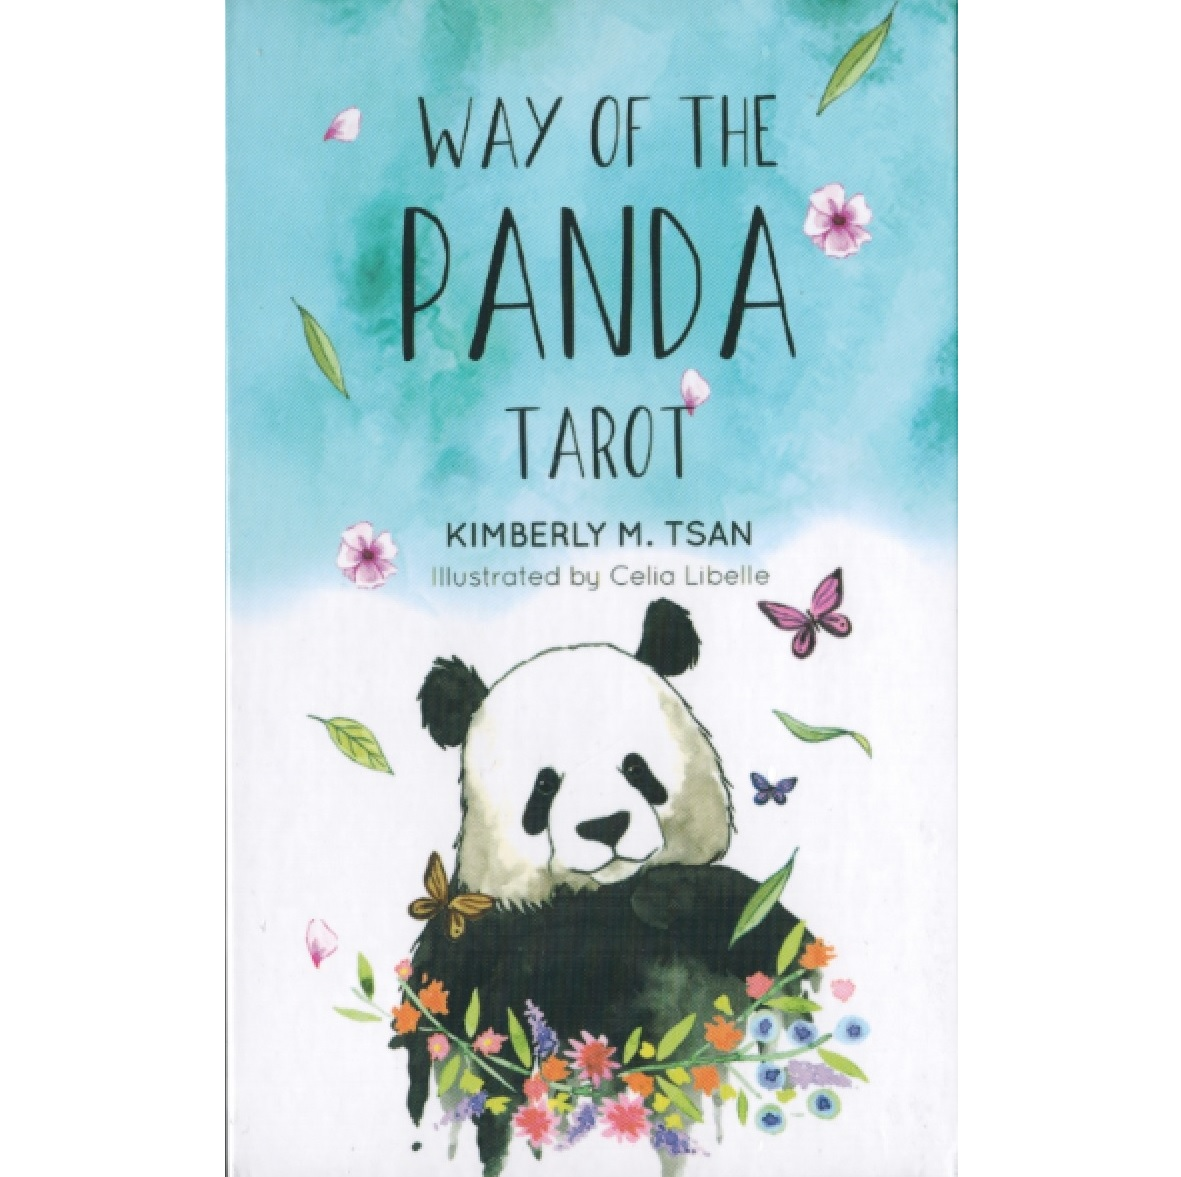 Way of the Panda Tarot 17